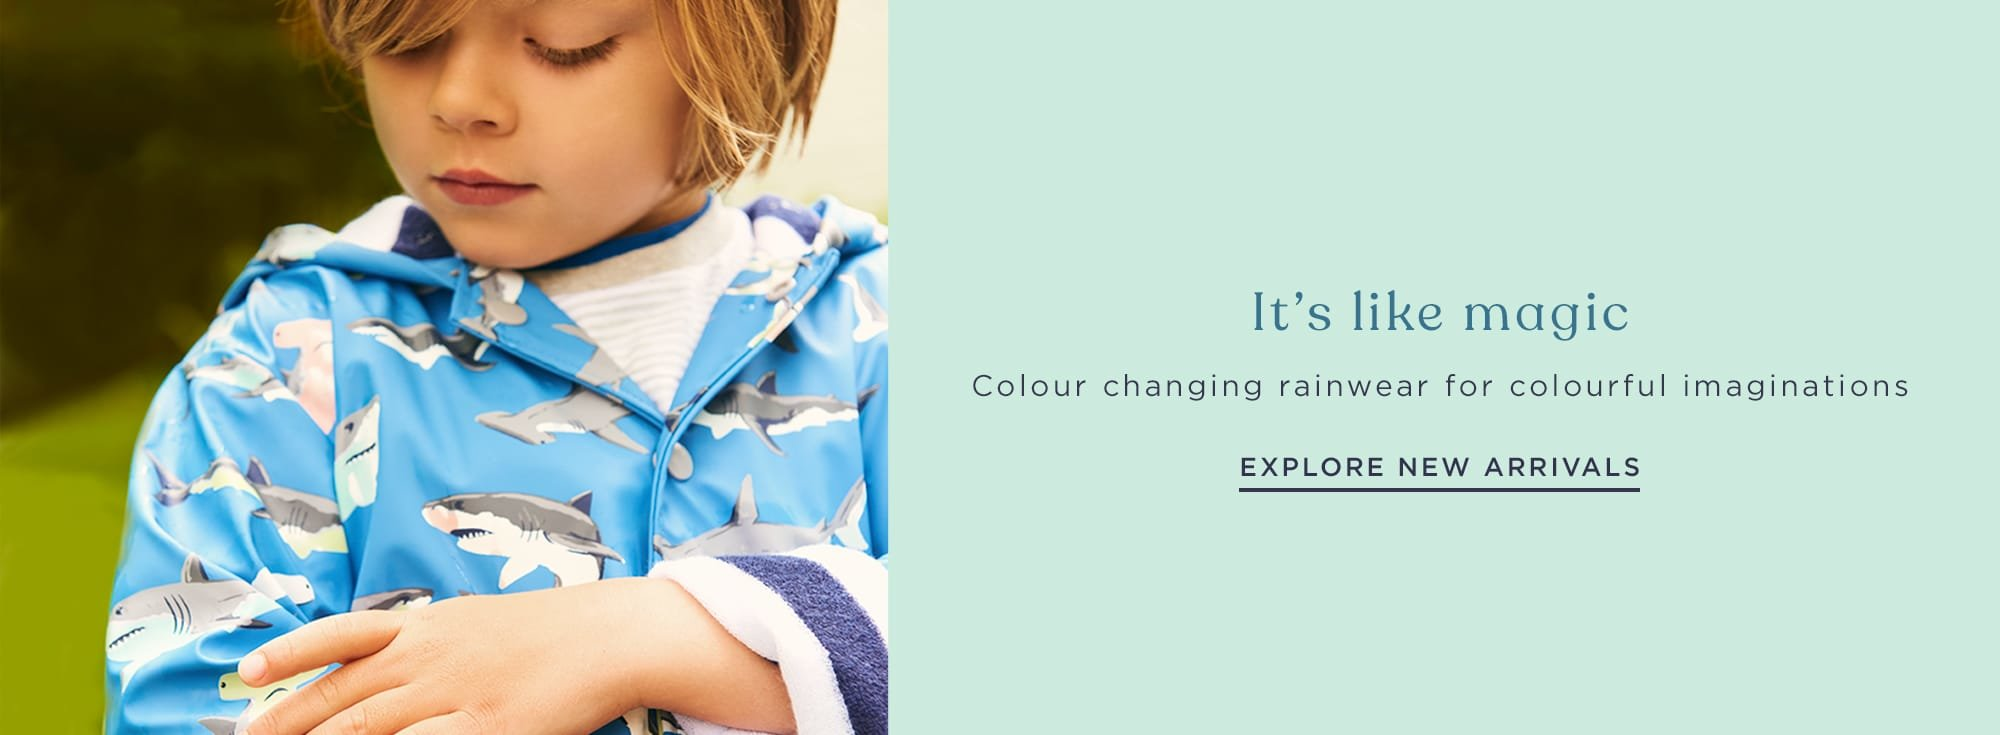 Shop new arrivals in rainwear